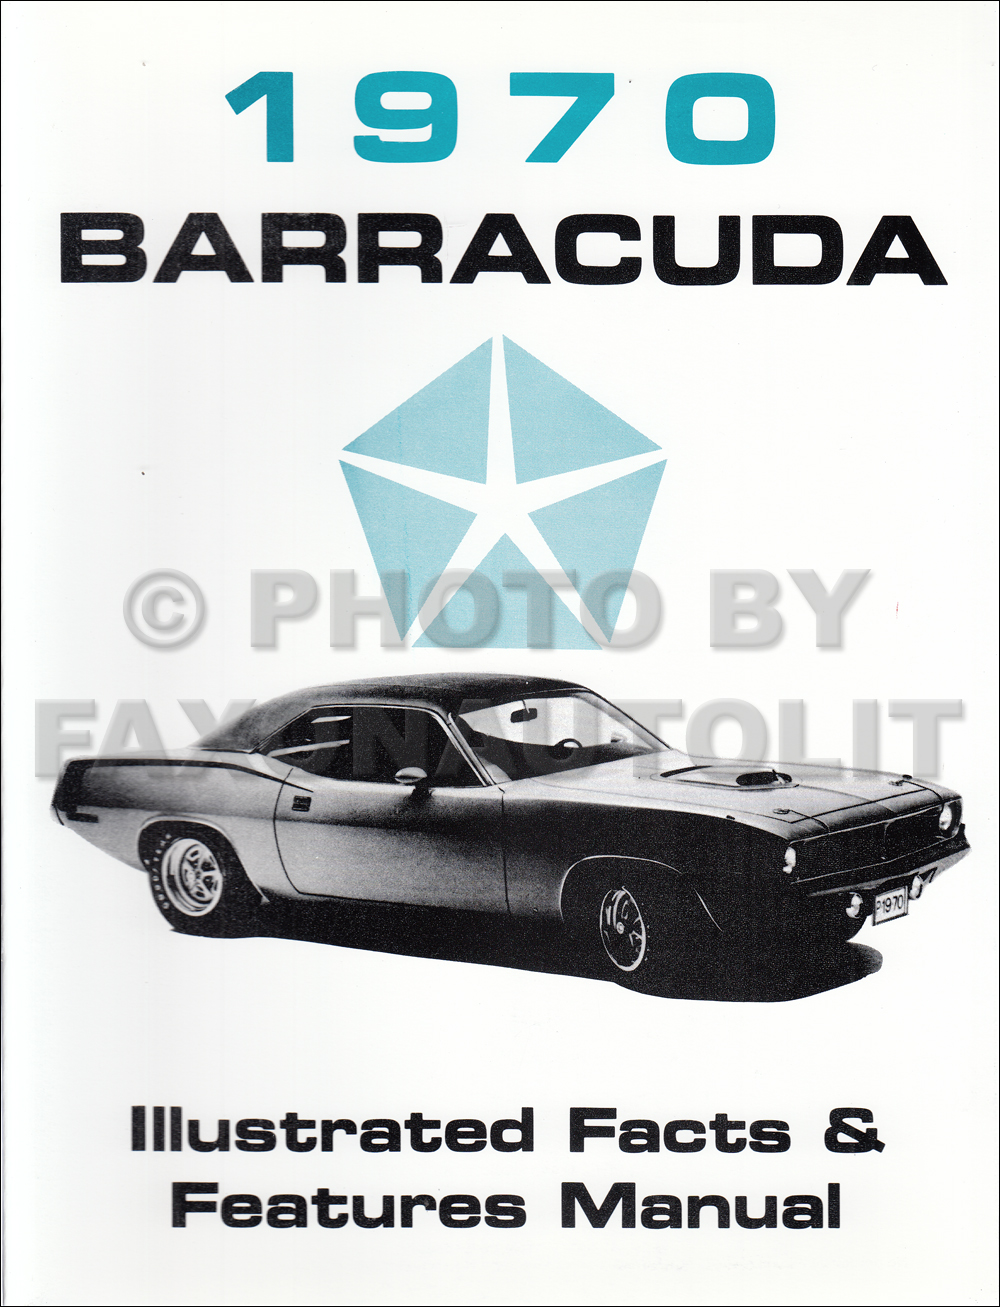 1970 Plymouth Barracuda Illustrated Facts & Features Manual Reprint